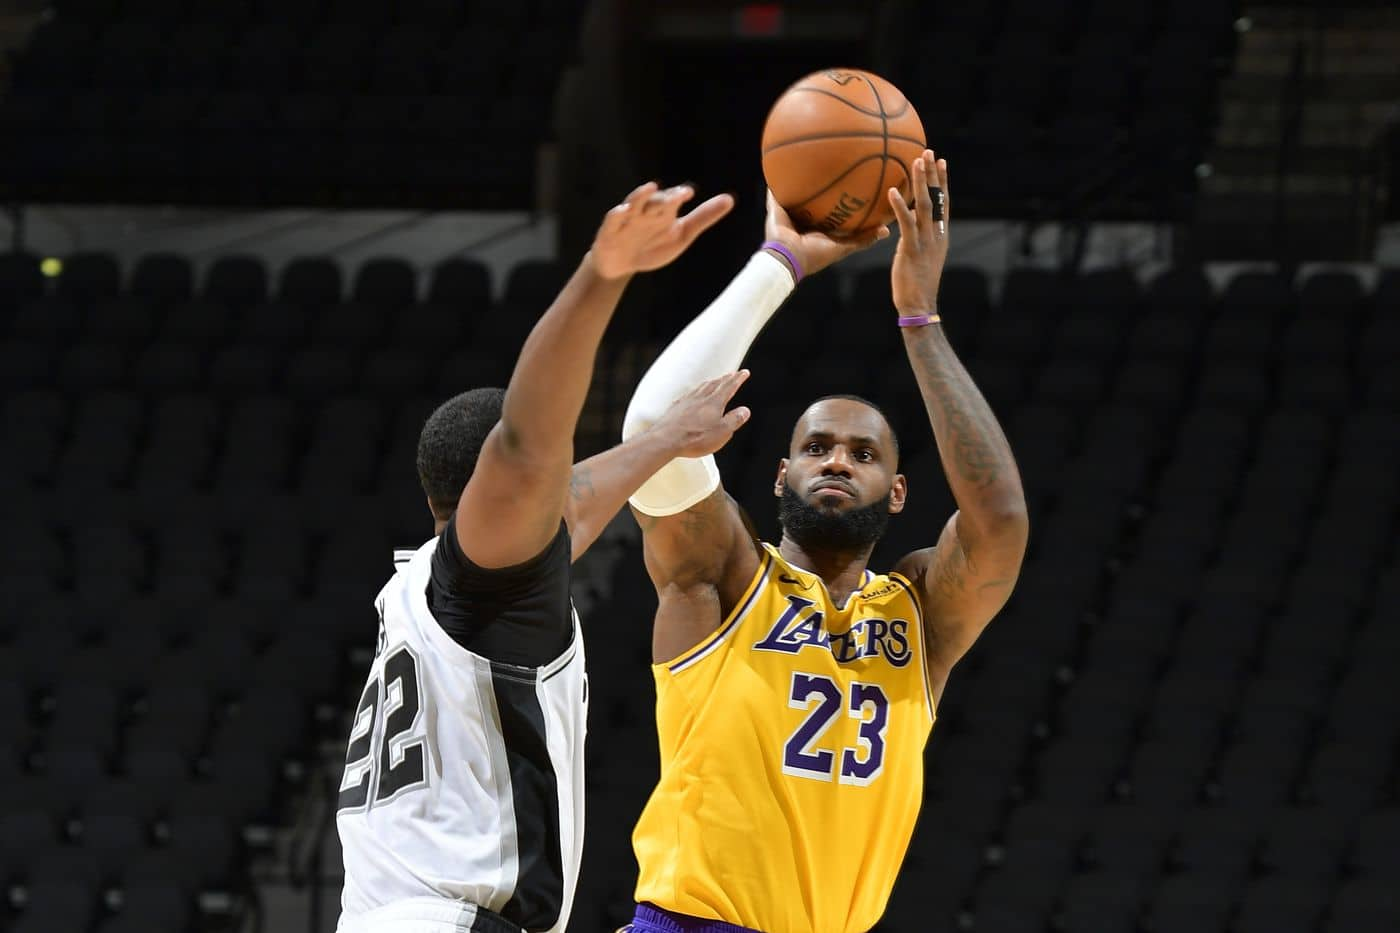 Lakers #23 up for a three pointer Spurs cant block